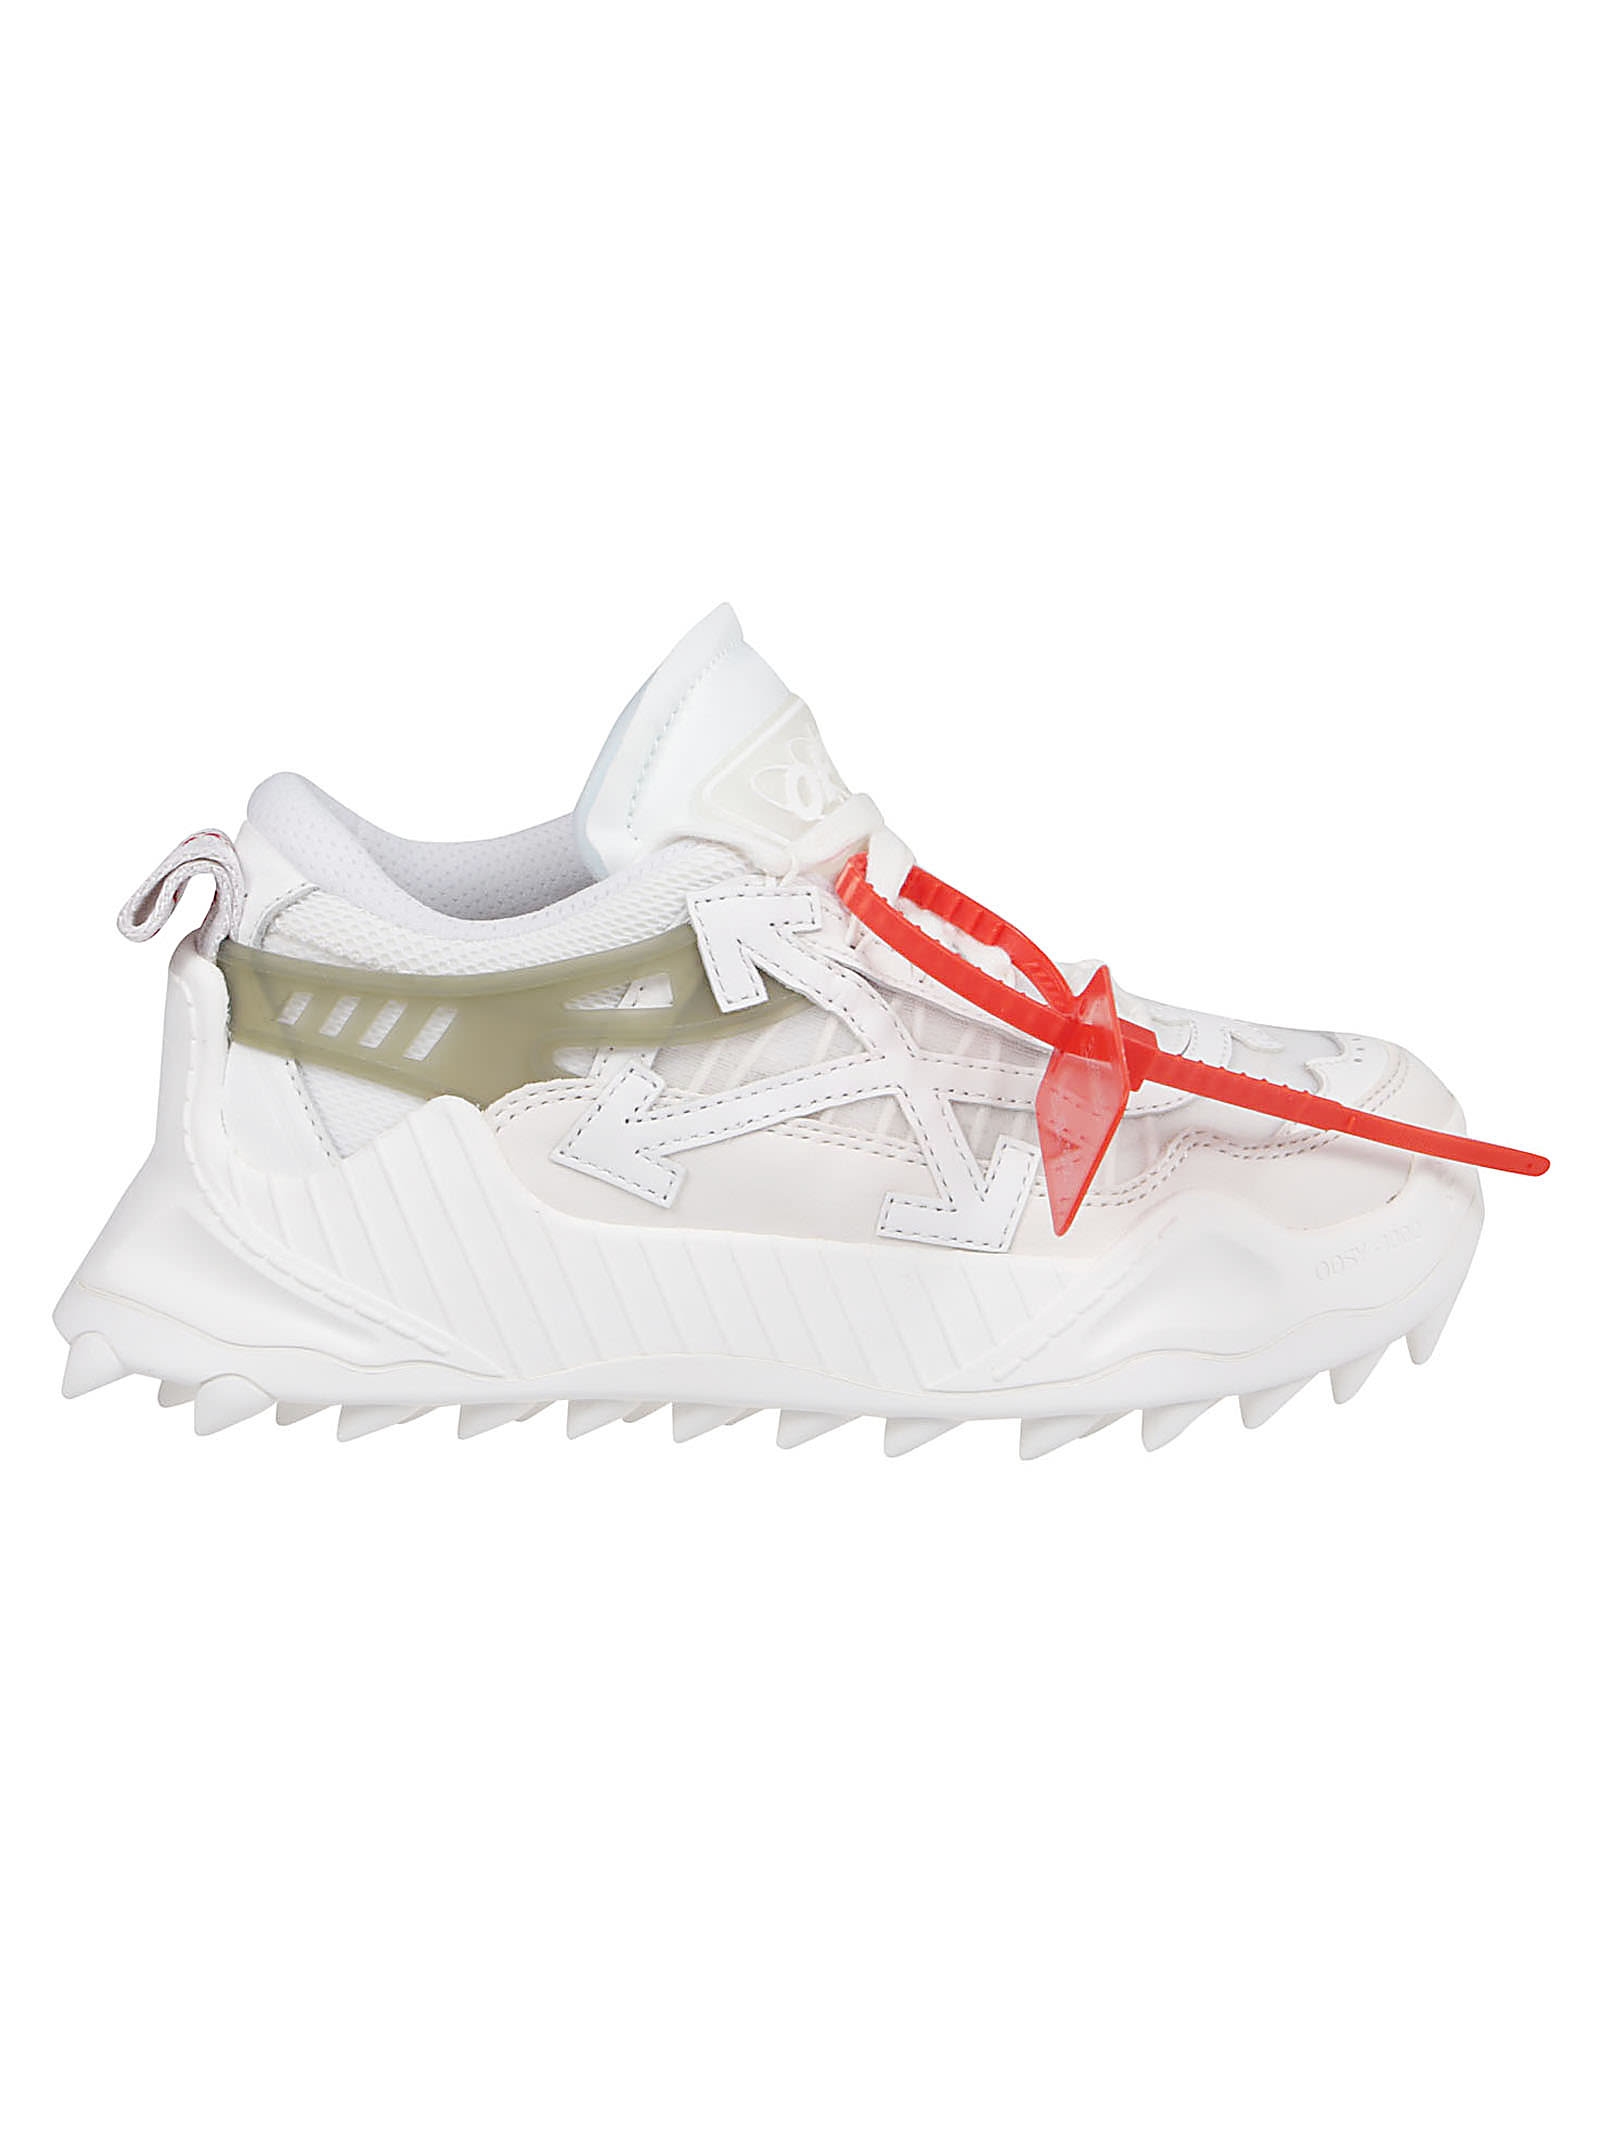 Off-White SNEAKERS ODSY